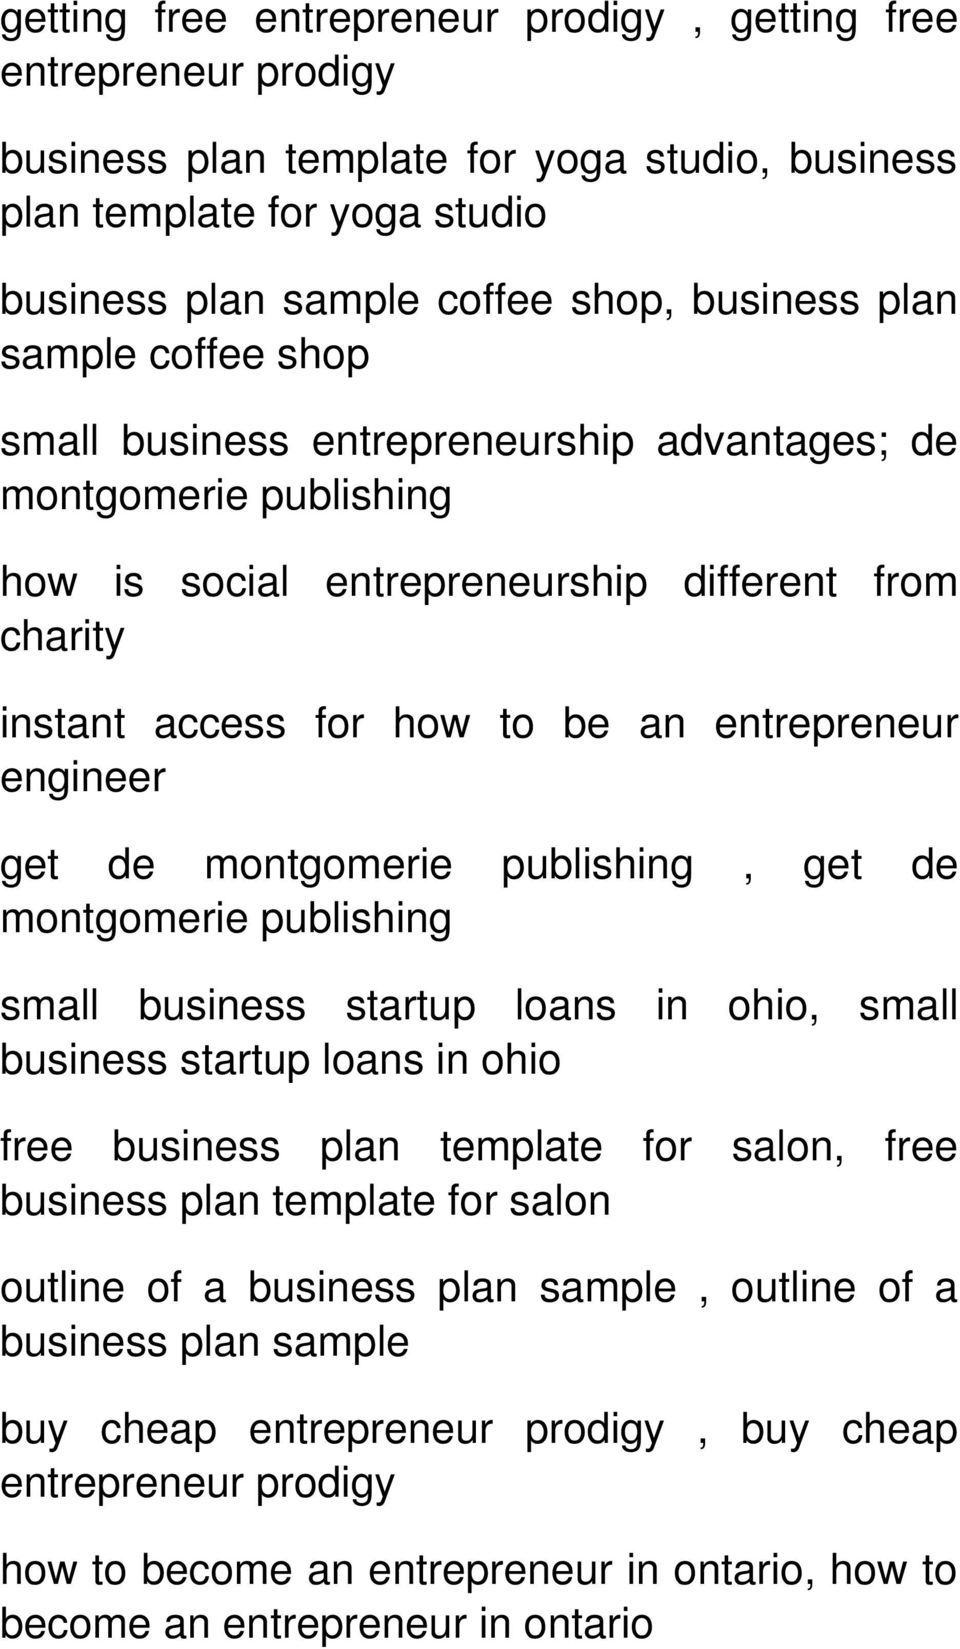 restaurant business plan for loan